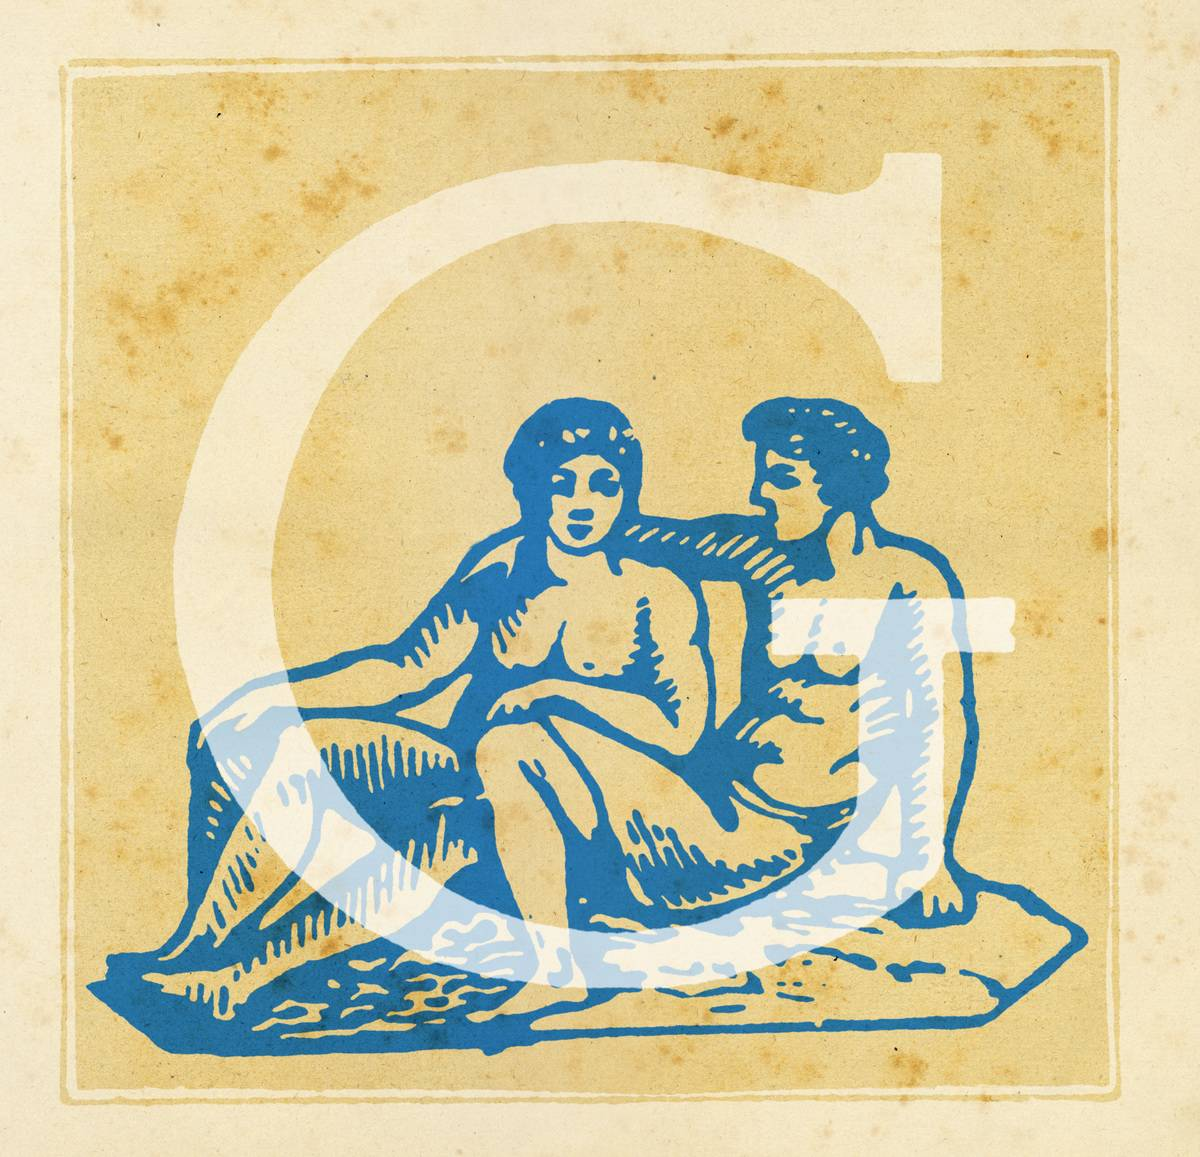 Capital letter G with zodiacal sign of the Gemini - the twins